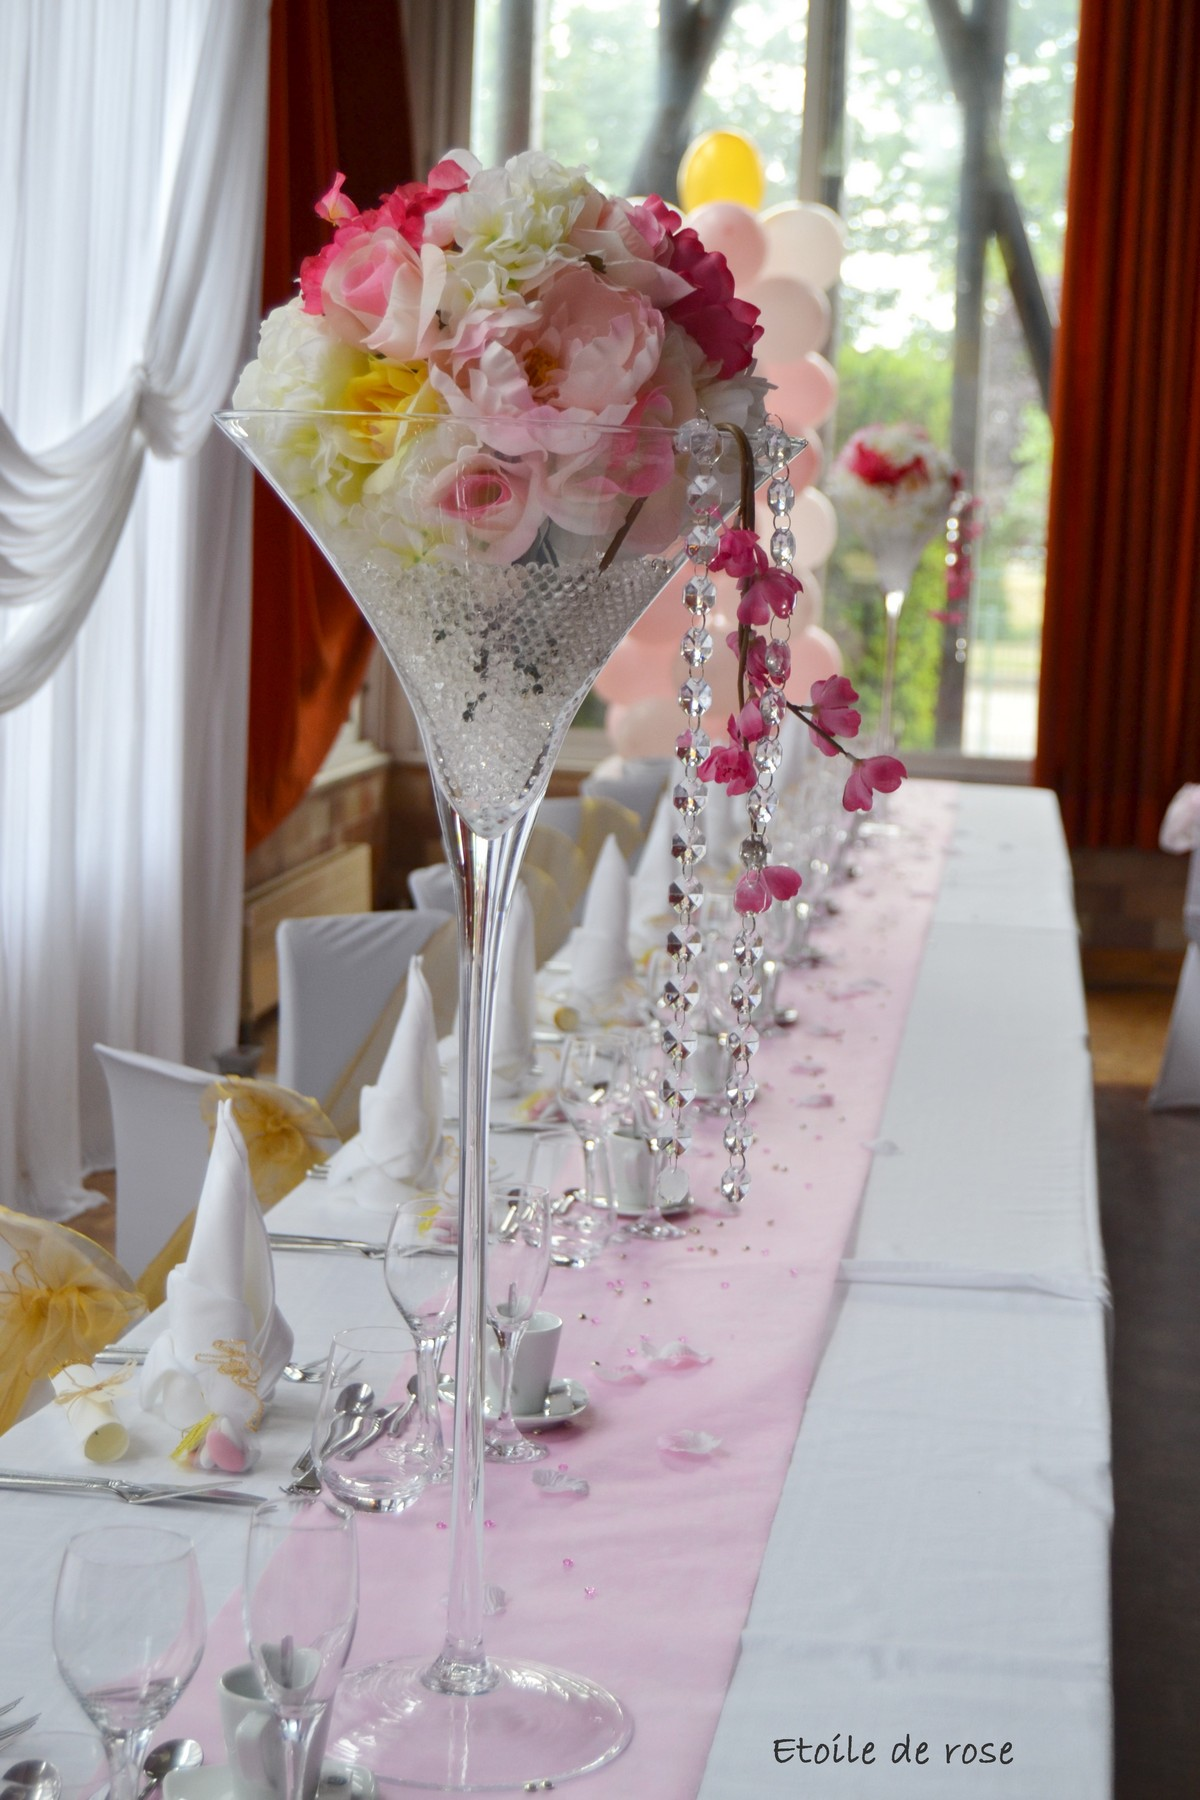 Mariage en rose et or etoile de rose pont sainte marie for Decoration or rose